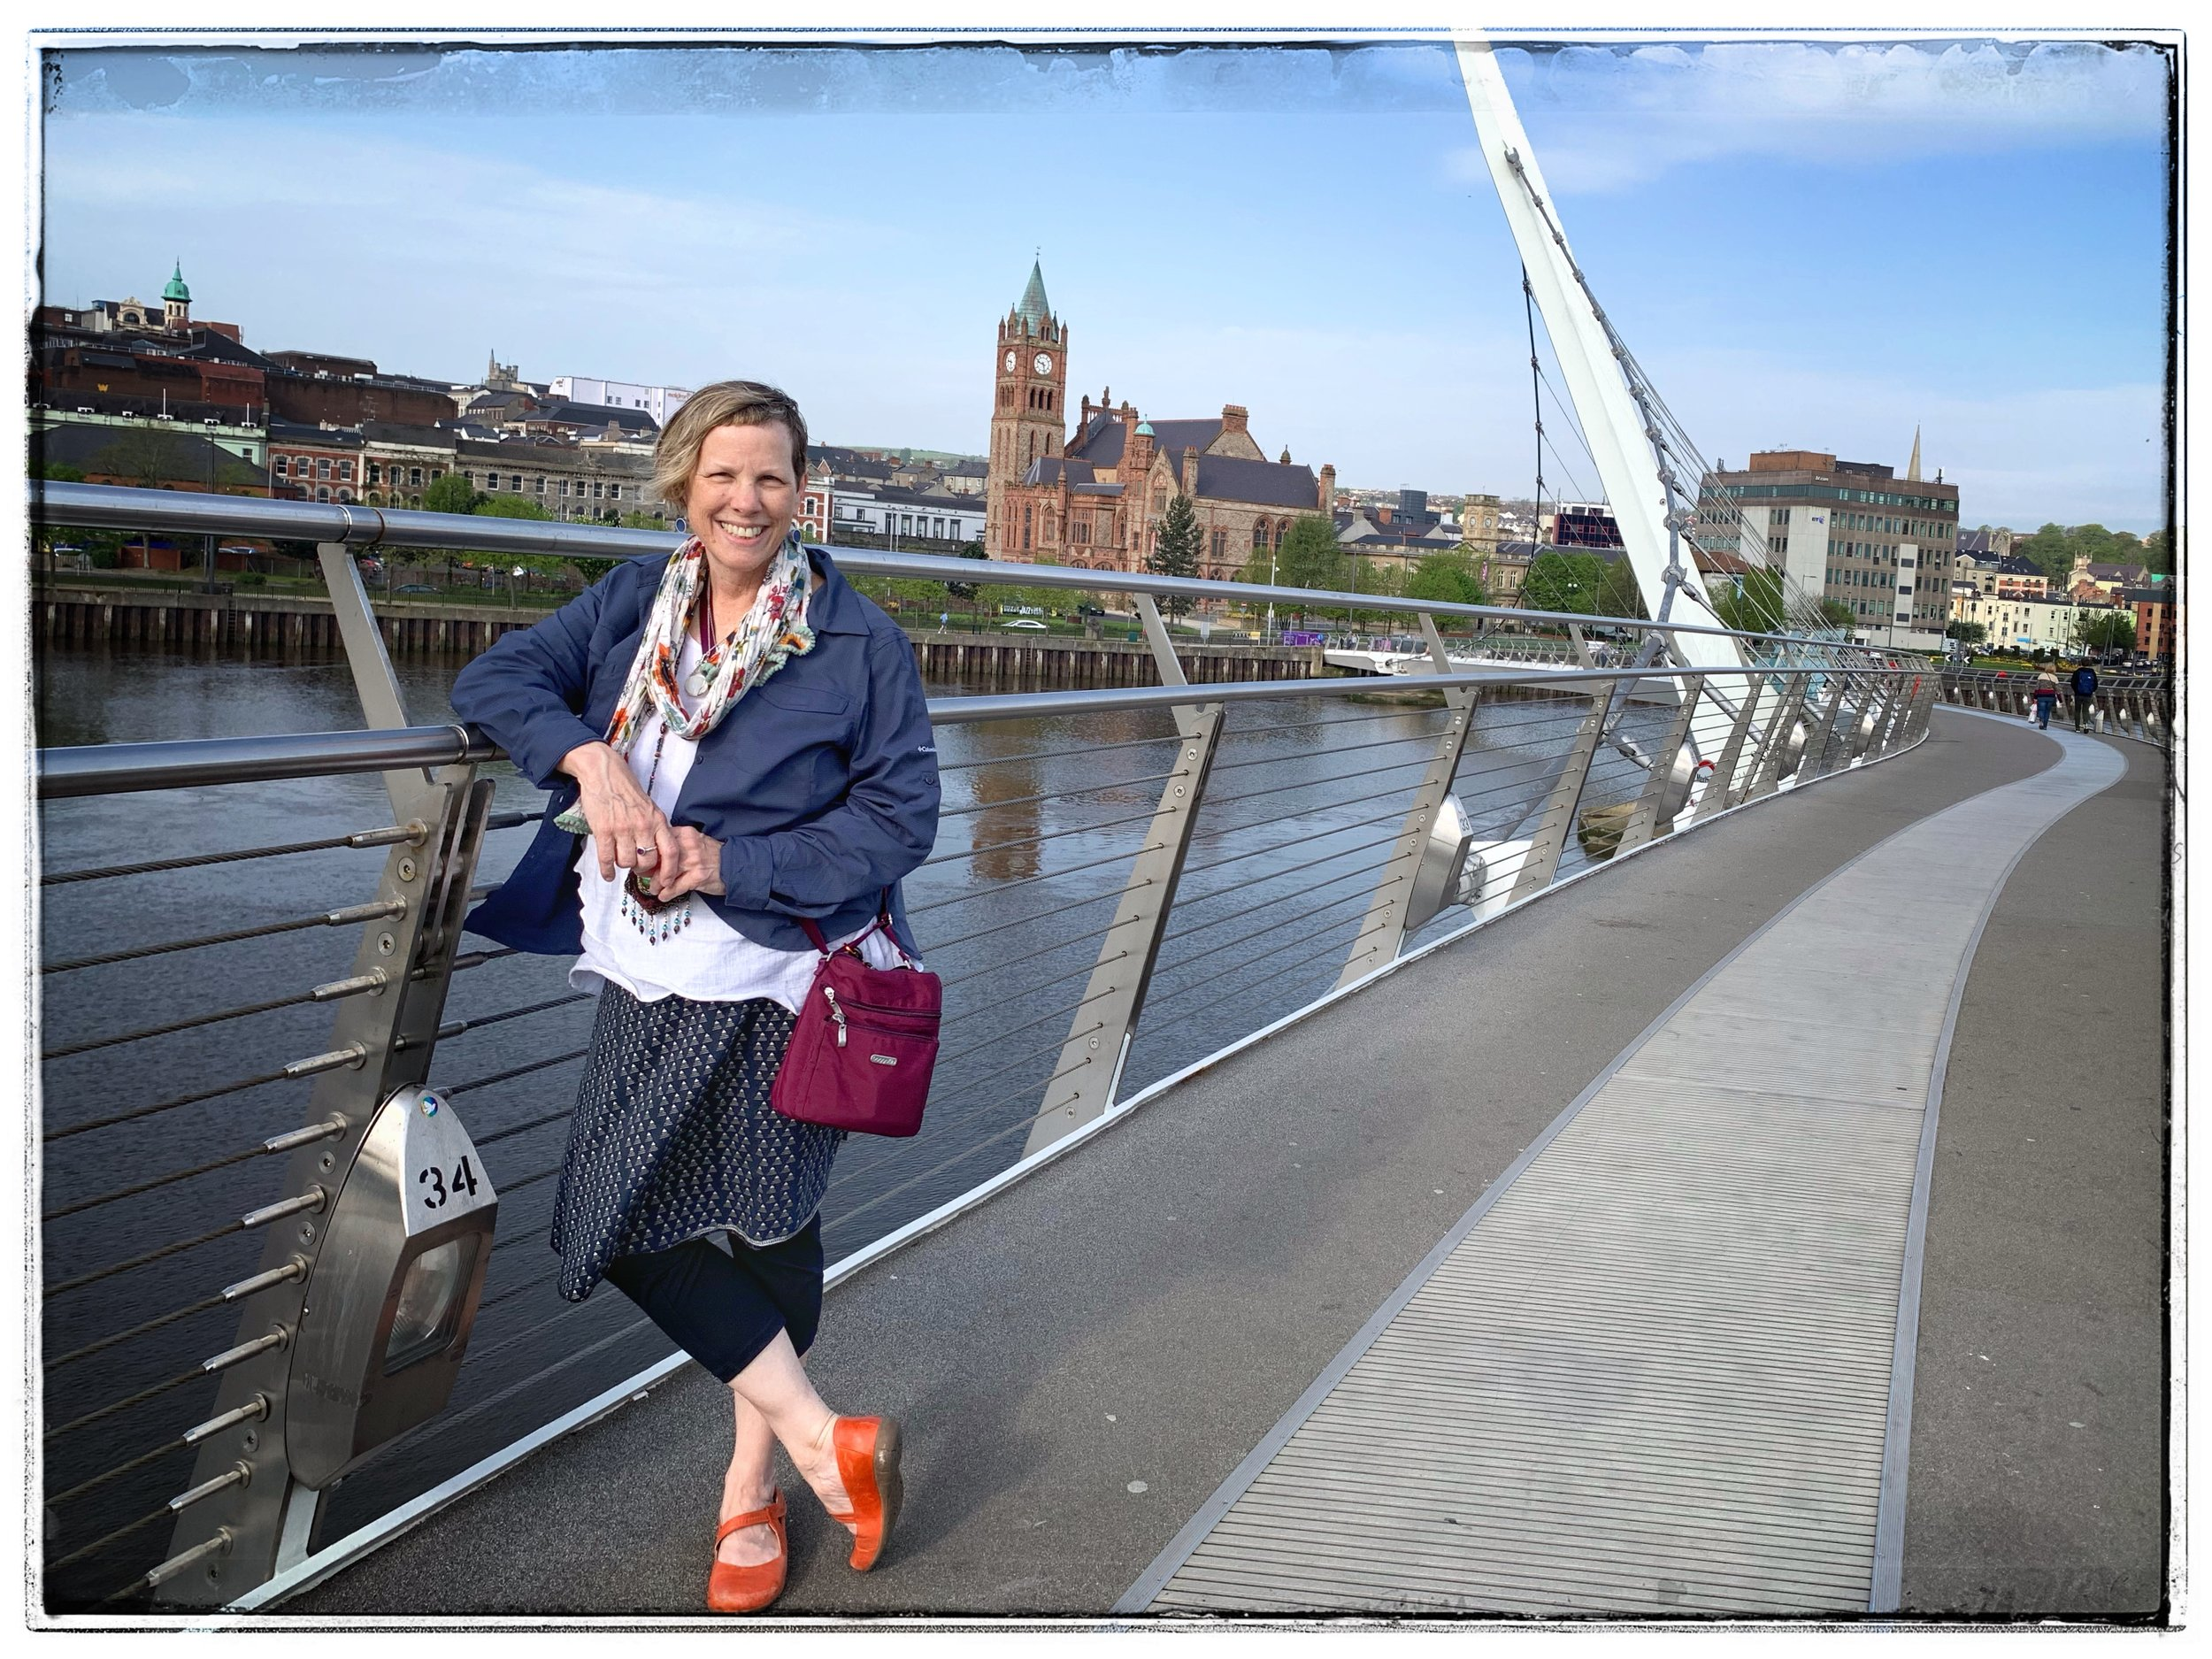 Crossing the Peace Bridge on a beautiful first day in Derry. Many famous people have walked across this bridge as well as everyday folk. It is a powerful symbol of healing. photo by Lauren Richardson.